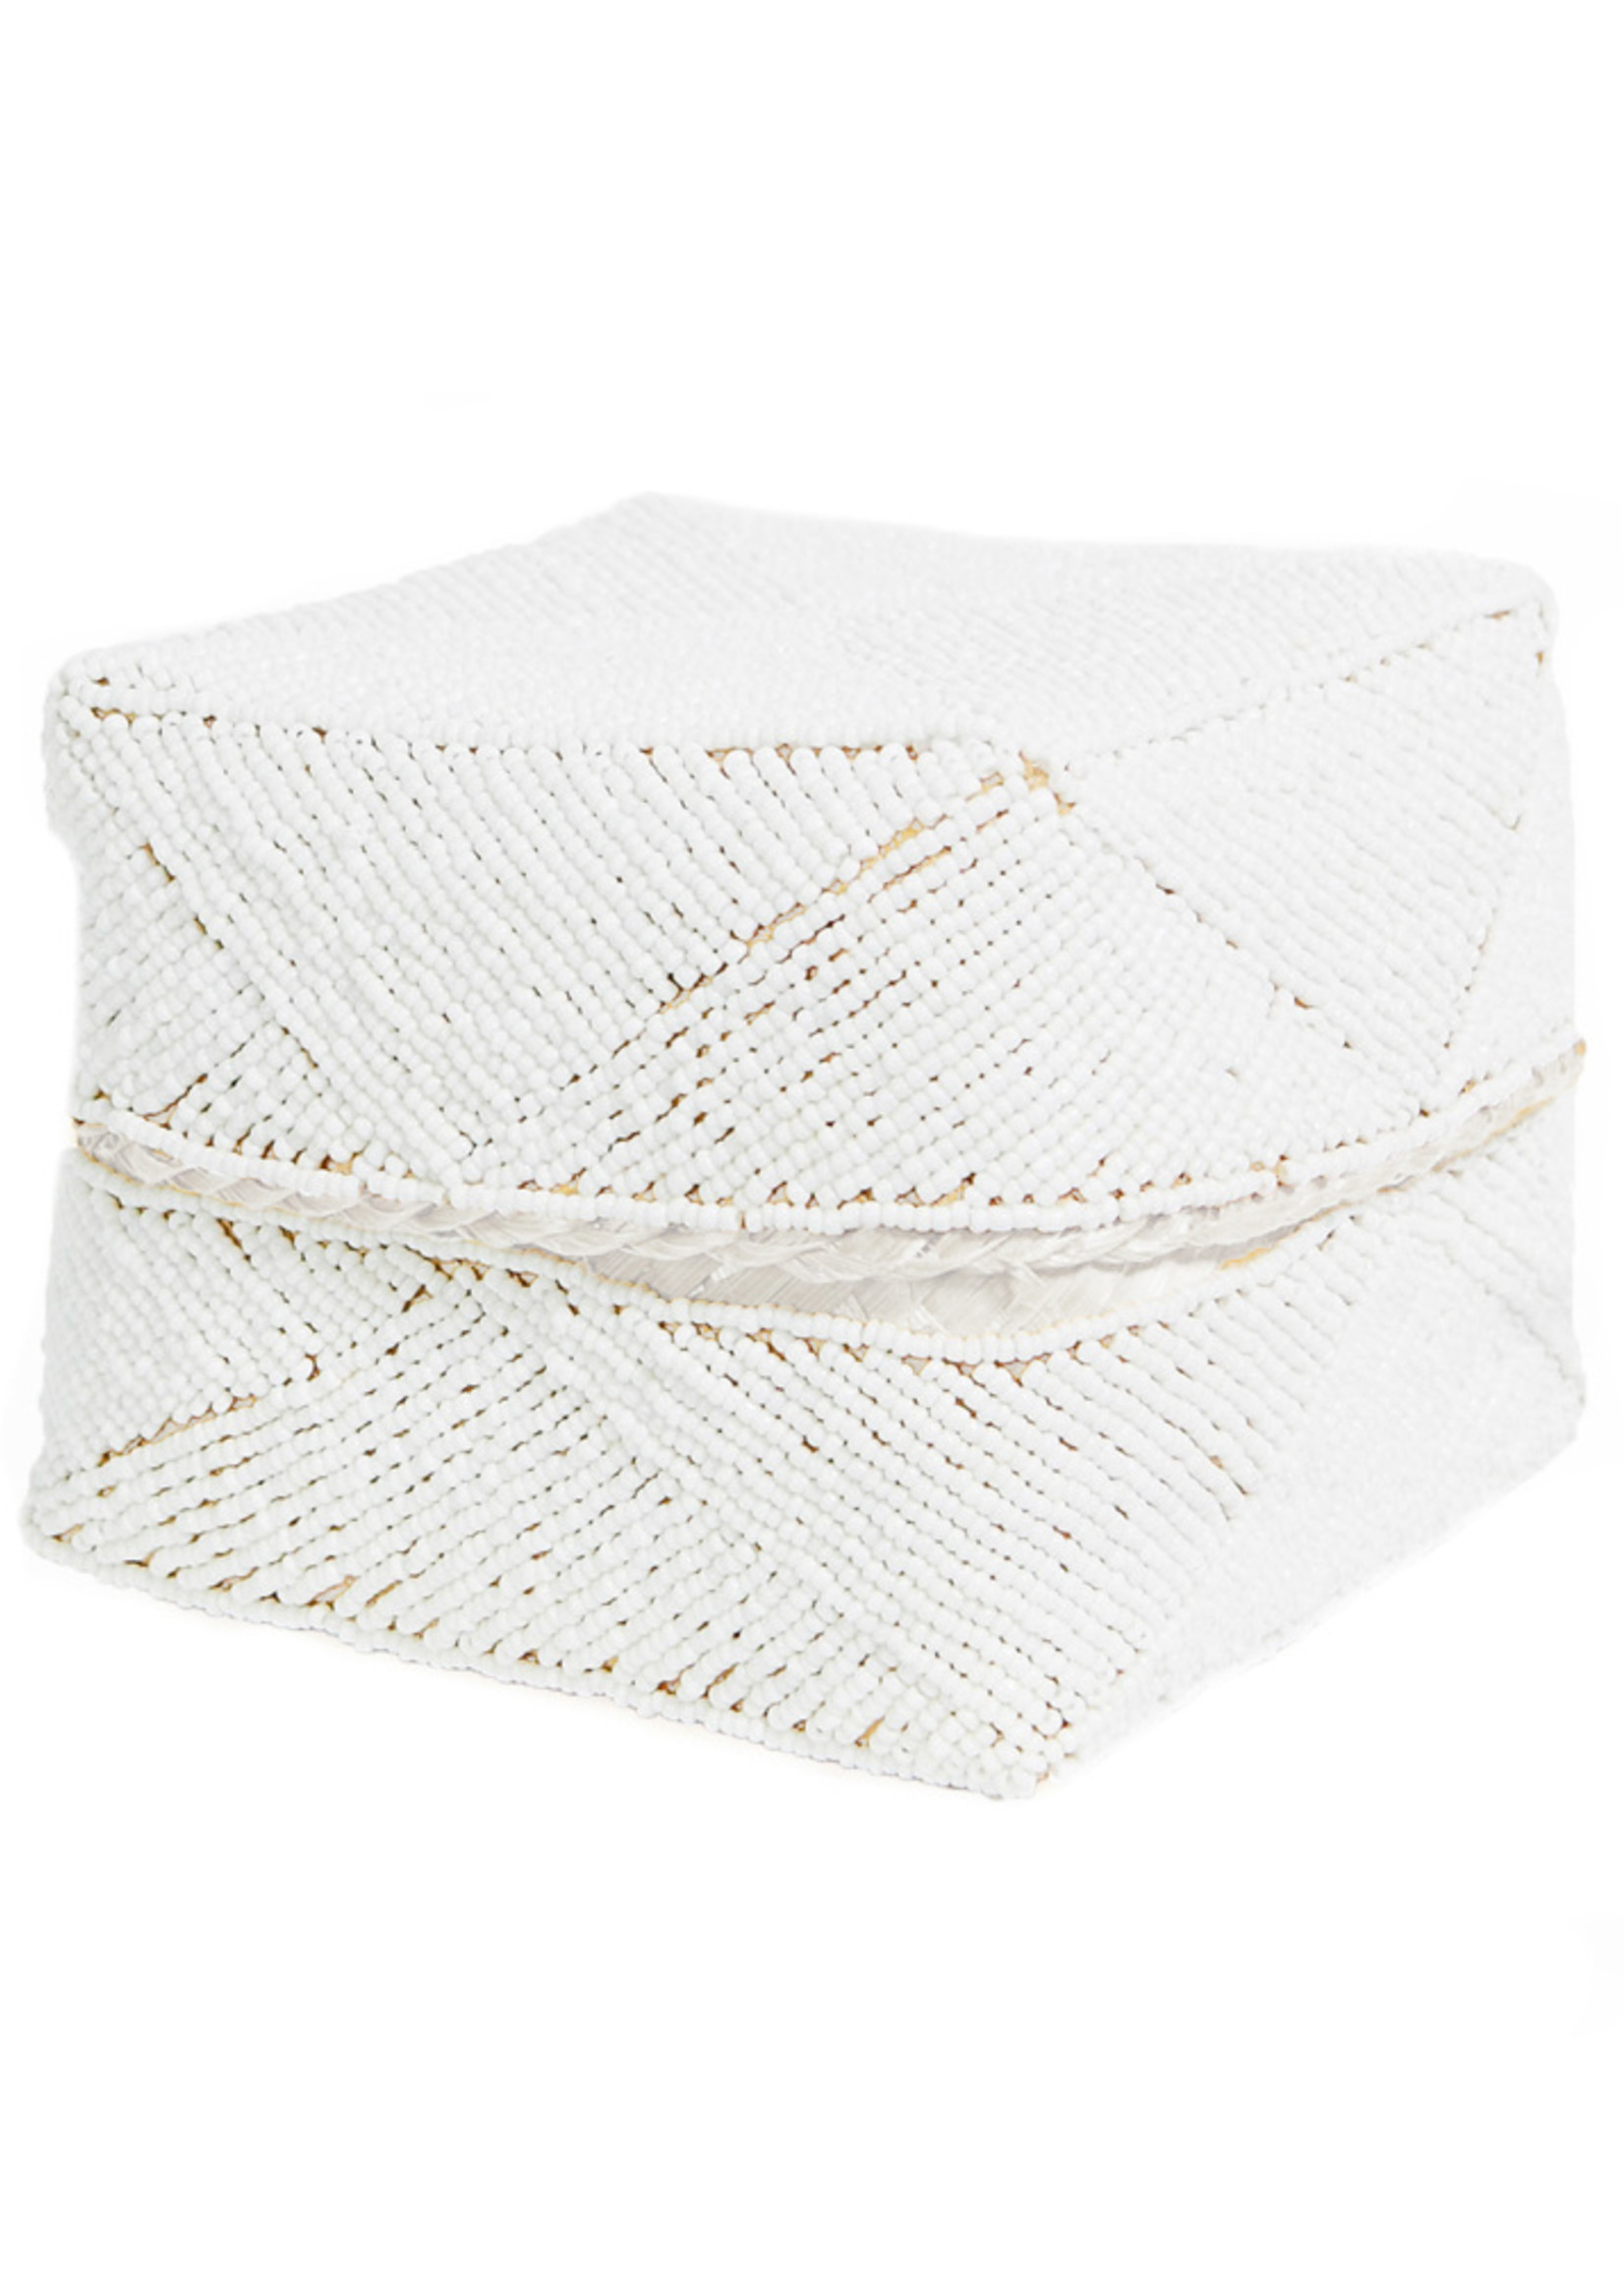 The Beaded Basket - White - L